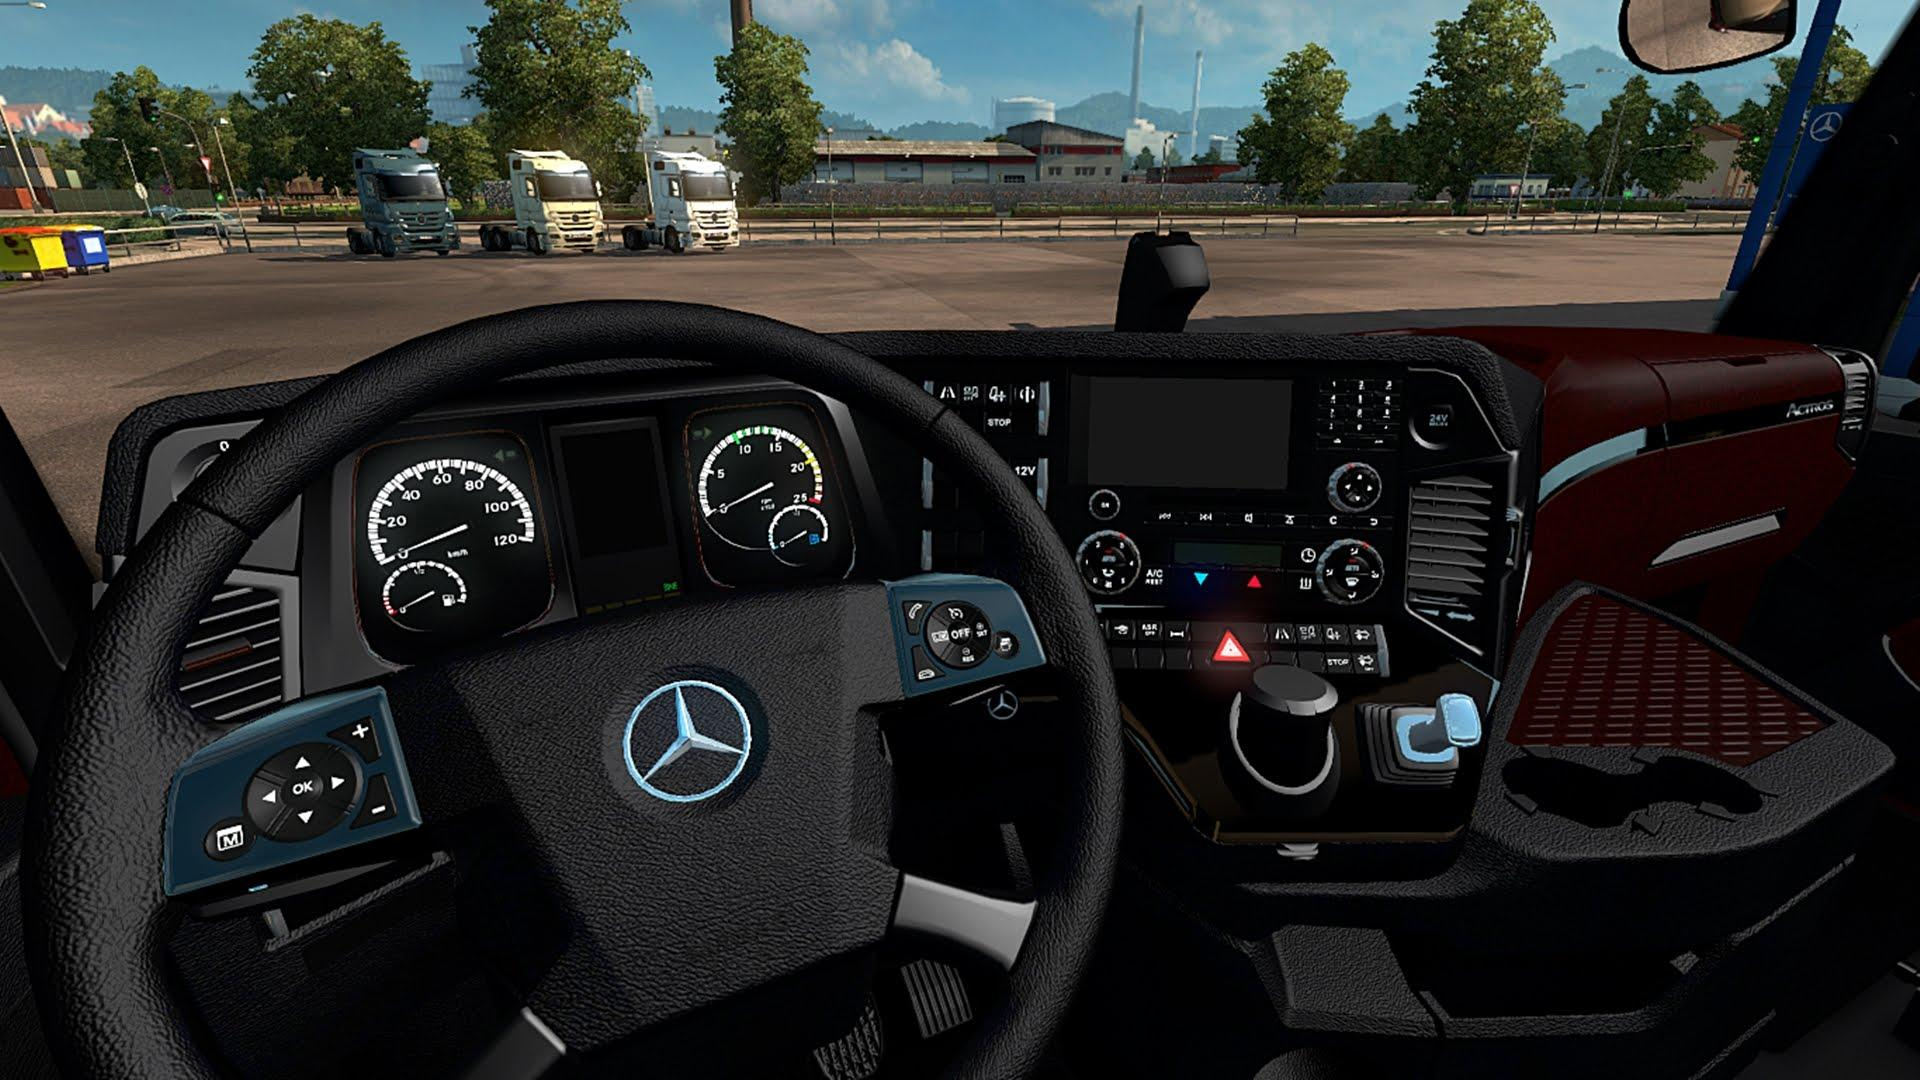 mercedes-benz-actros-mp4-red-black-interior_1